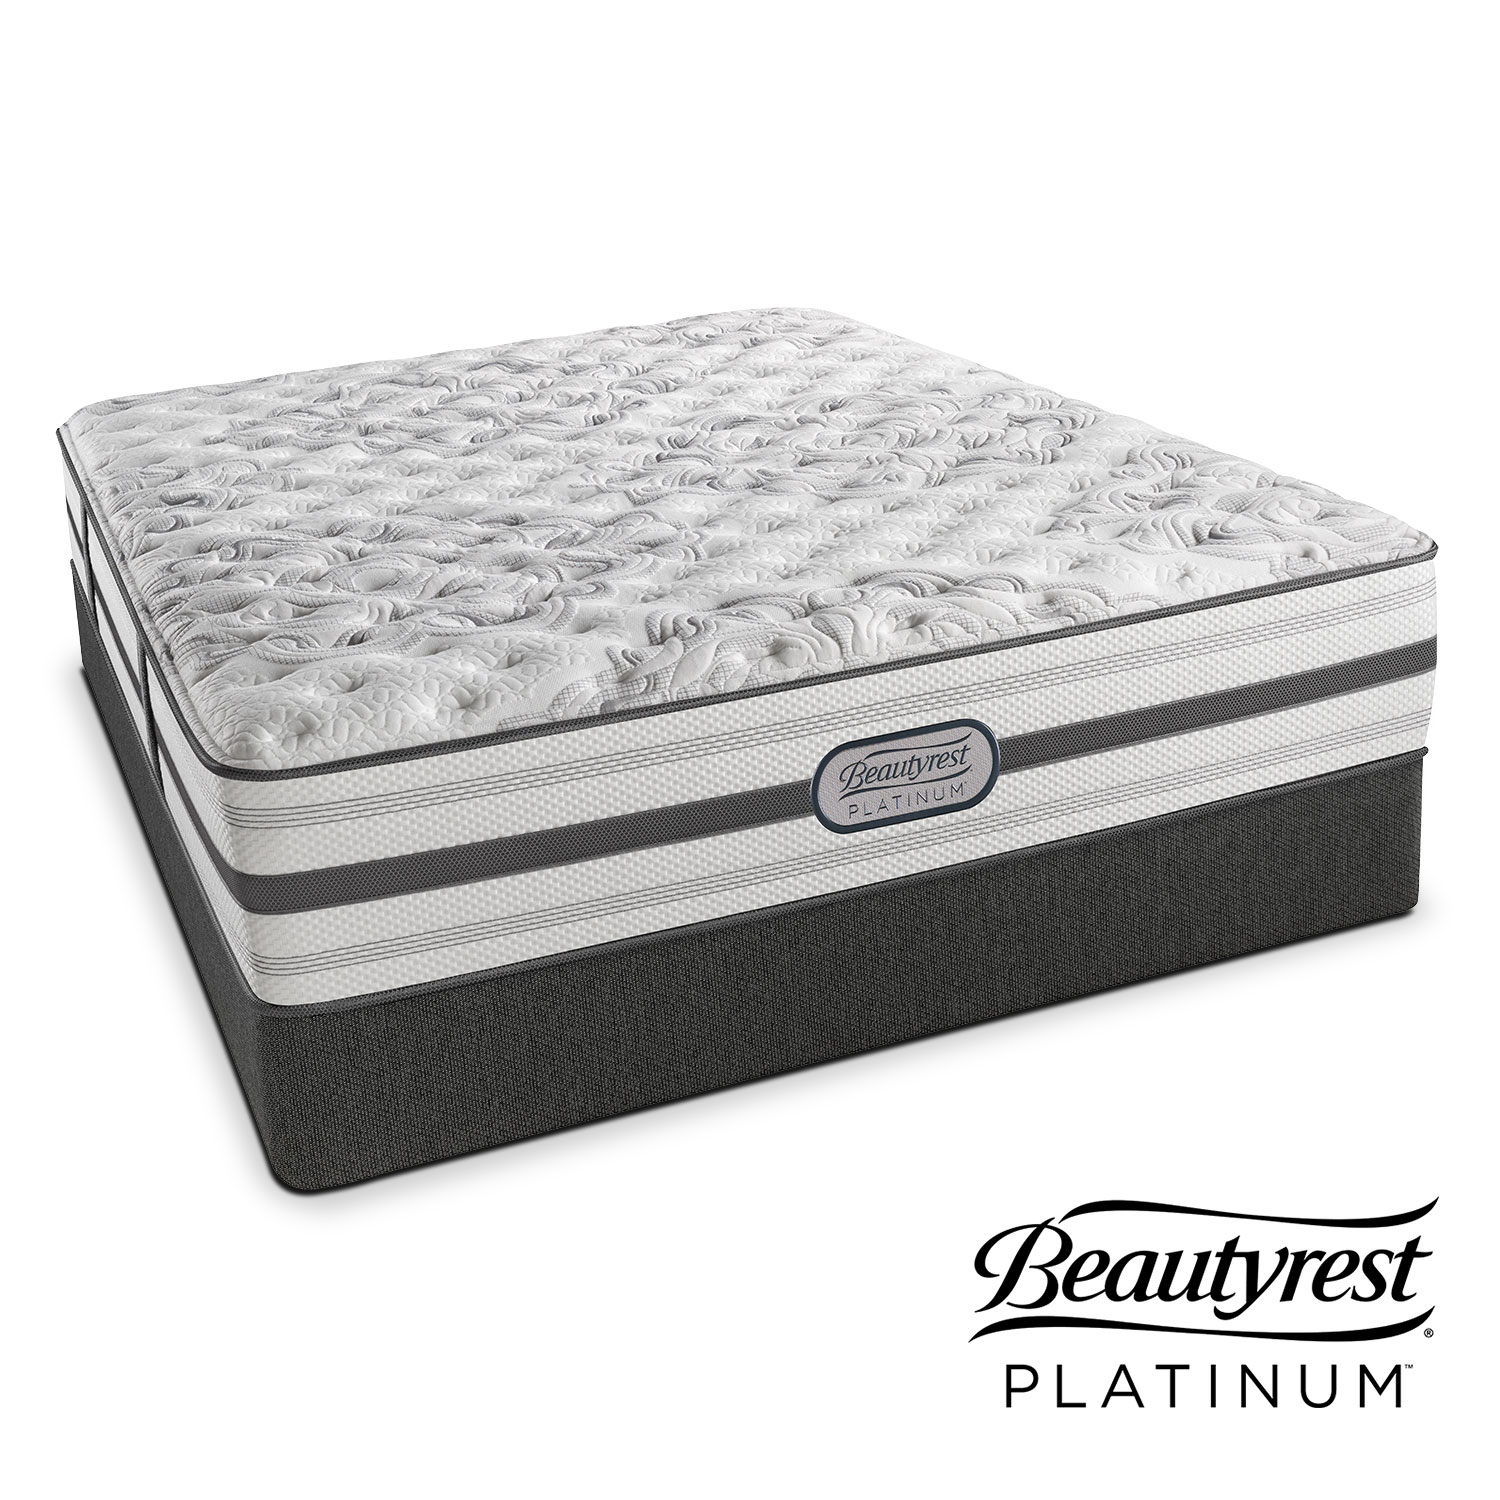 Mattresses and Bedding - Helena Extra-Firm Twin XL Mattress and Foundation Set